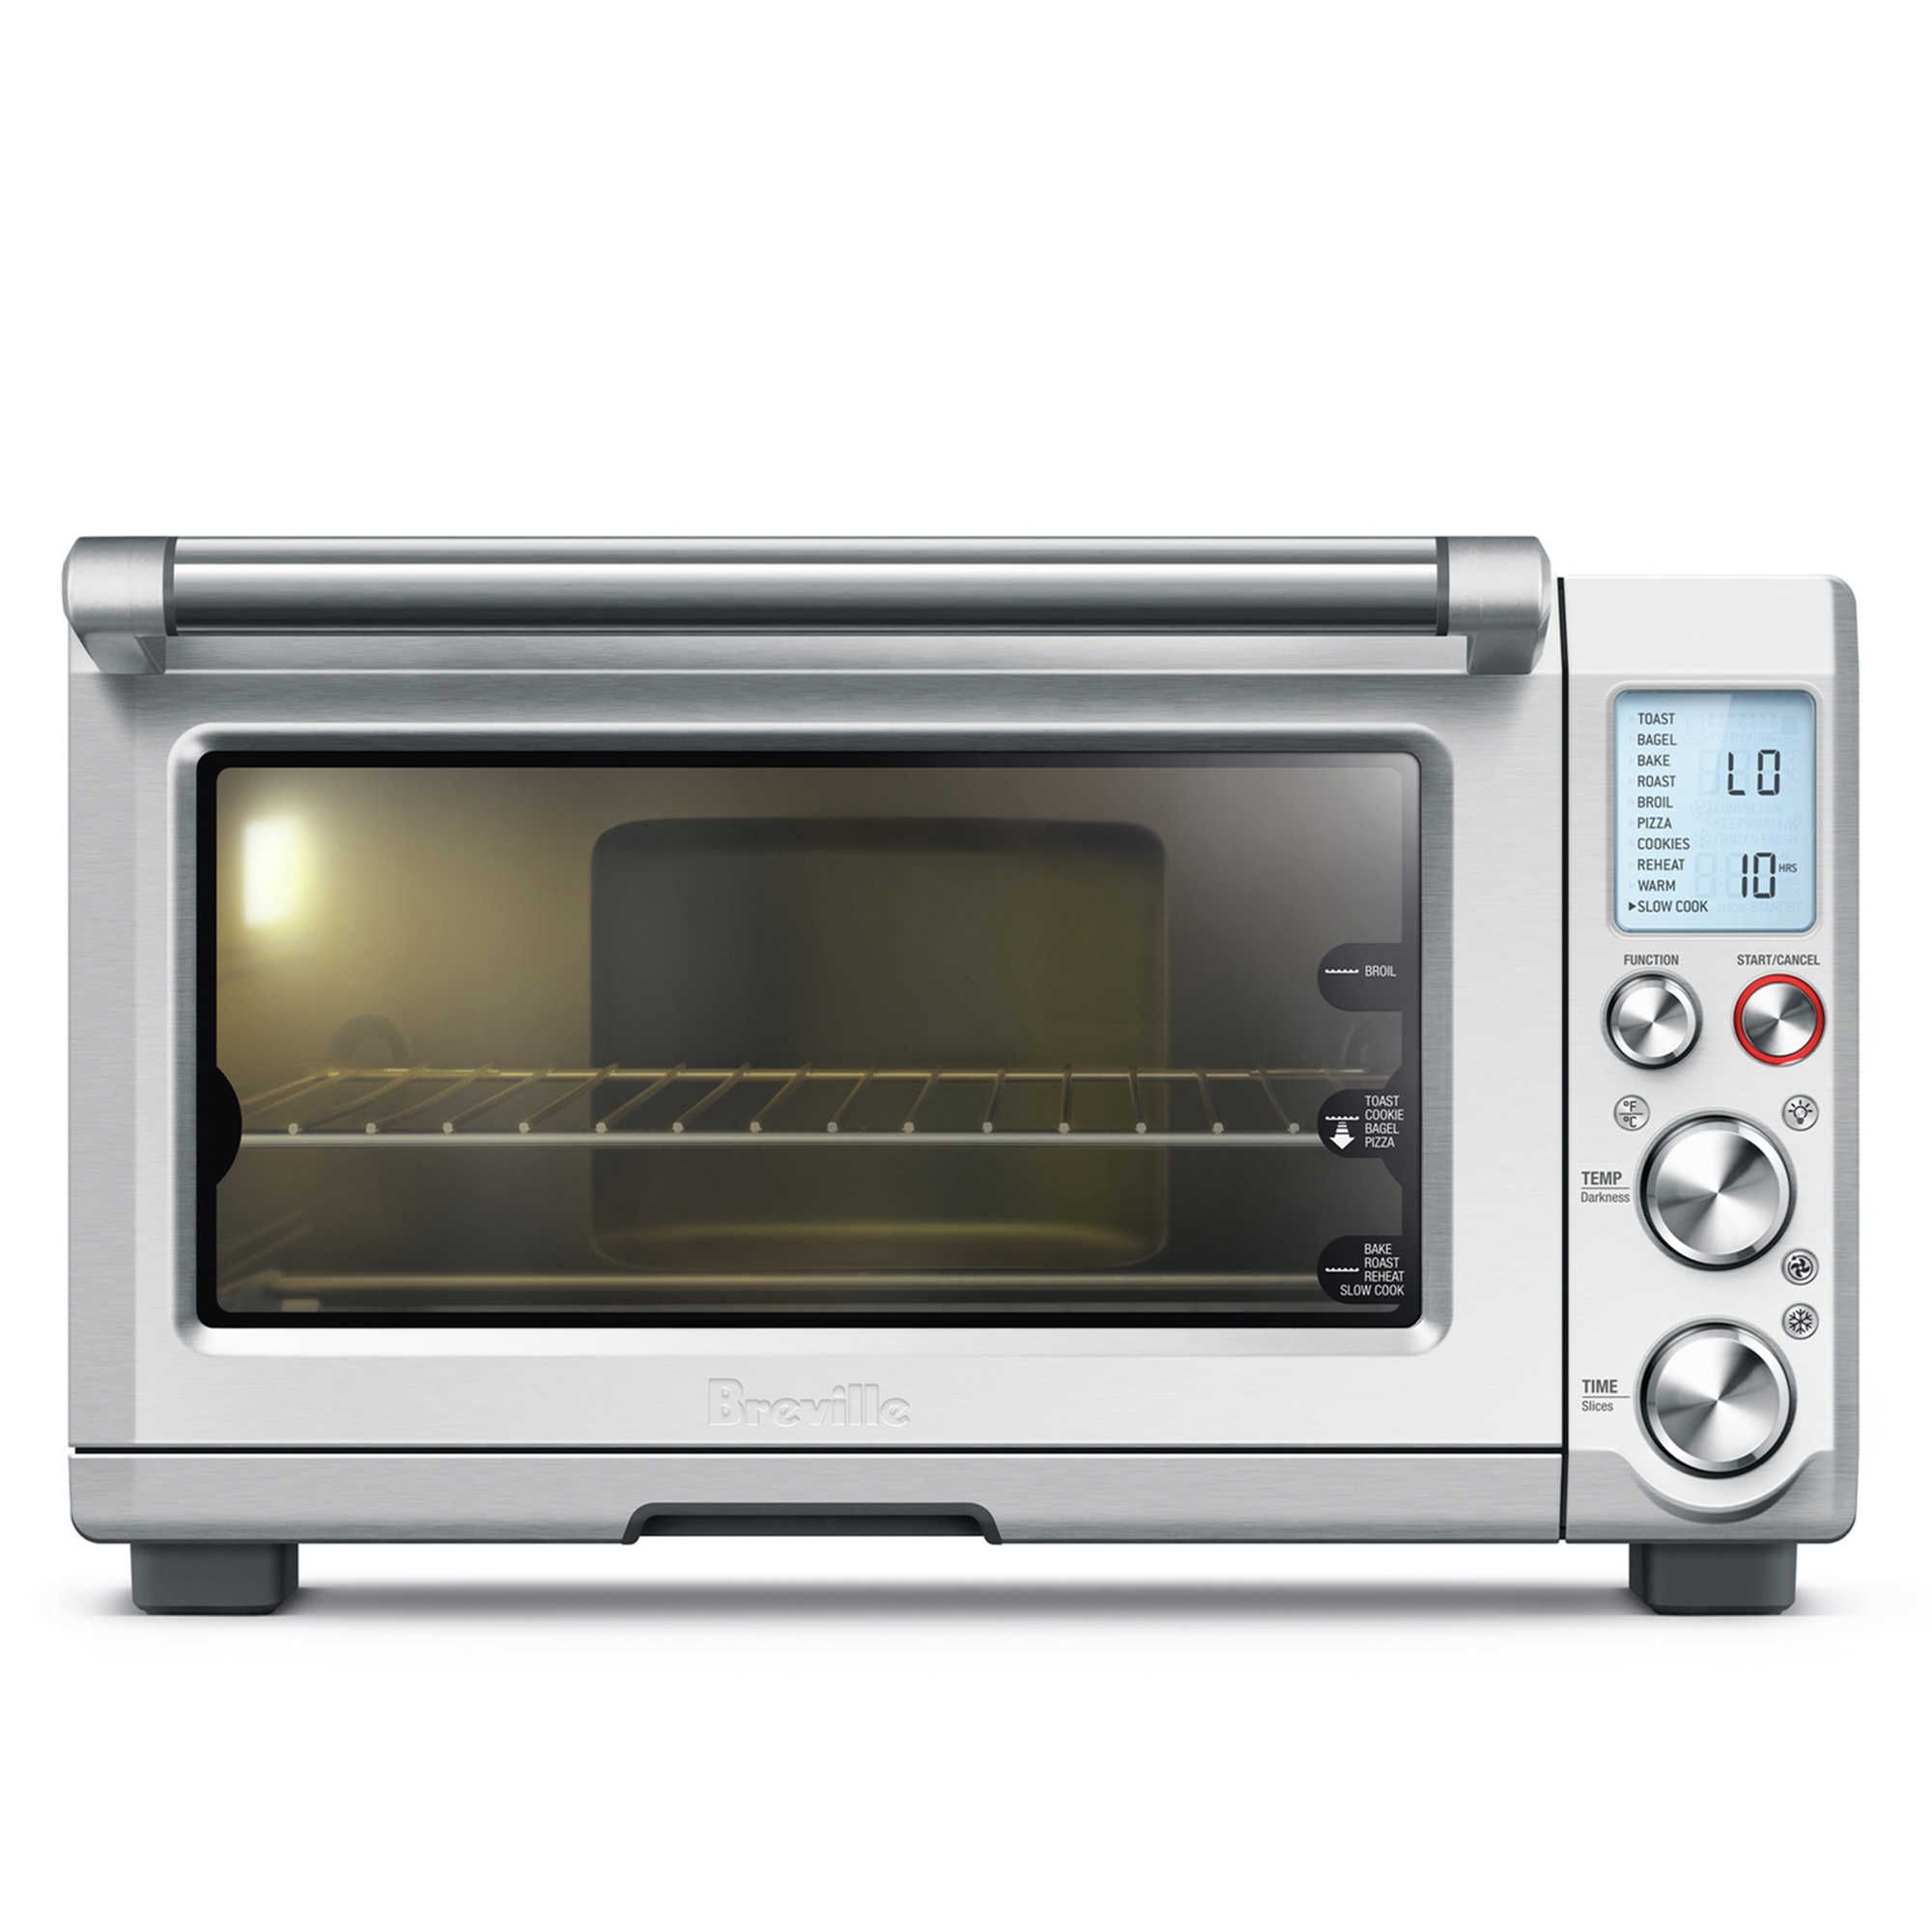 Breville Smart Convection Oven Pro Convection Toaster Oven